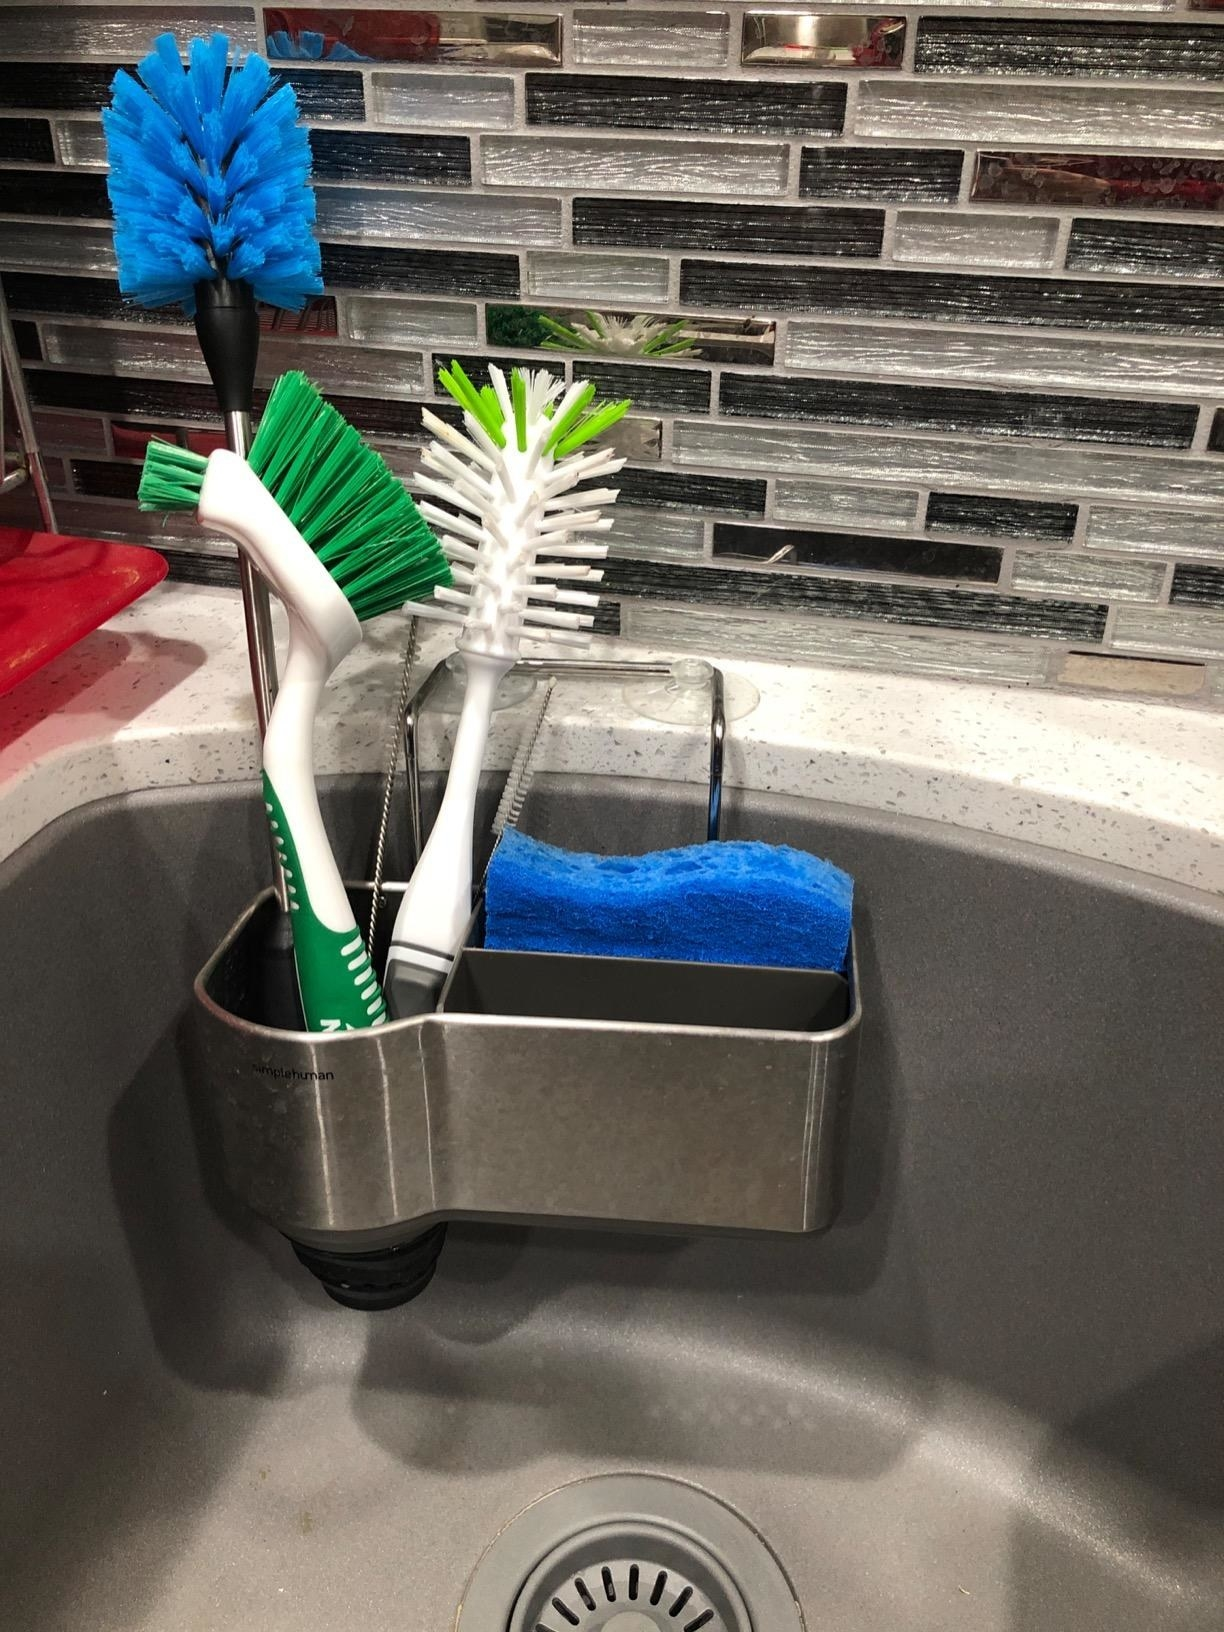 Sink caddy attached to the side of a sink with brushes and sponge inside